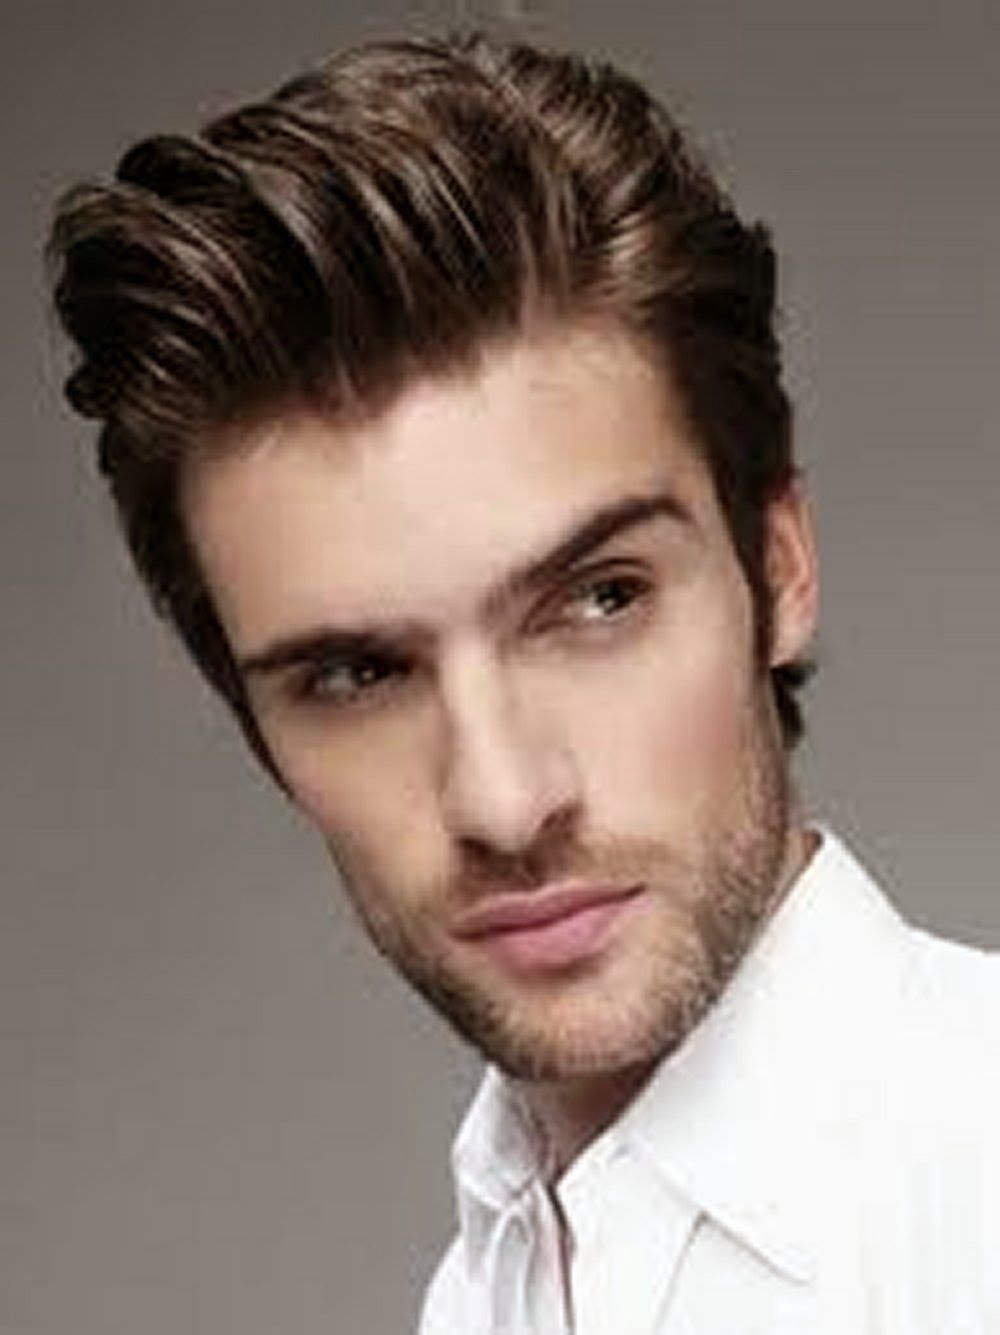 How To Get New Hairstyles For Men hairstyle ideas